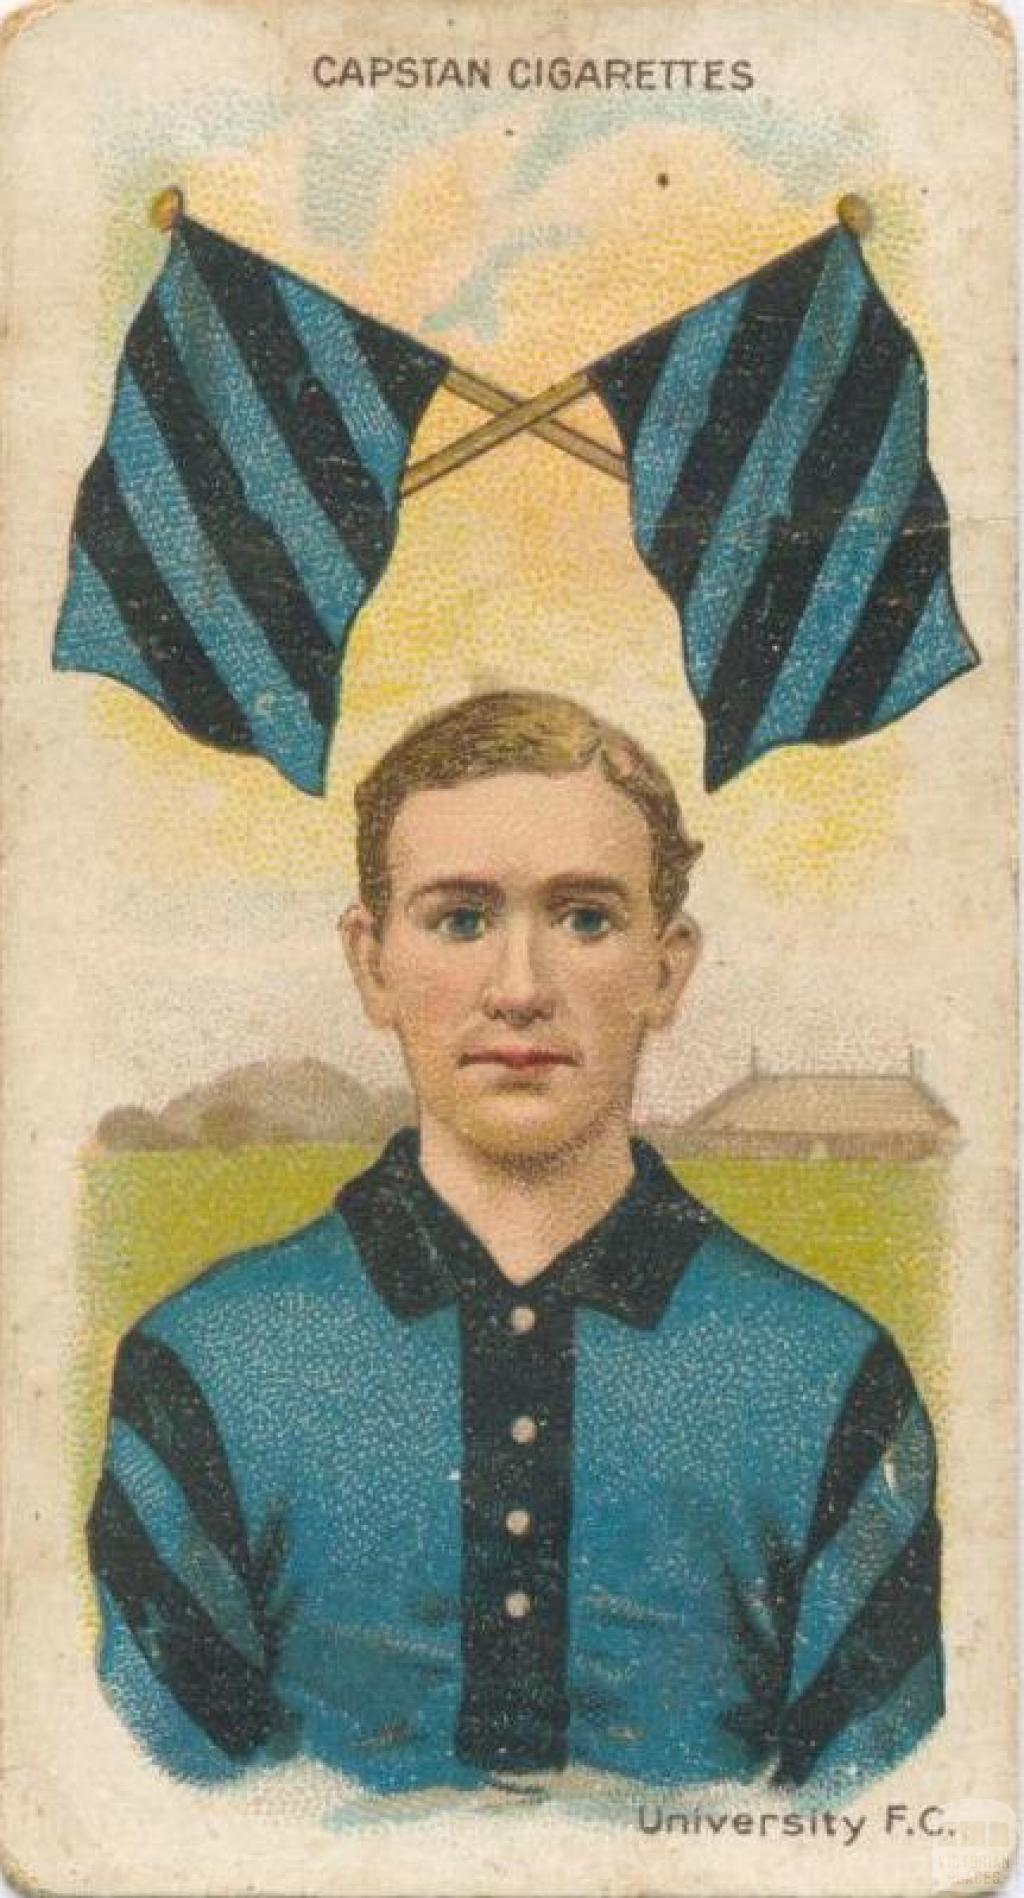 University Football Club, Capstan Cigarettes Card